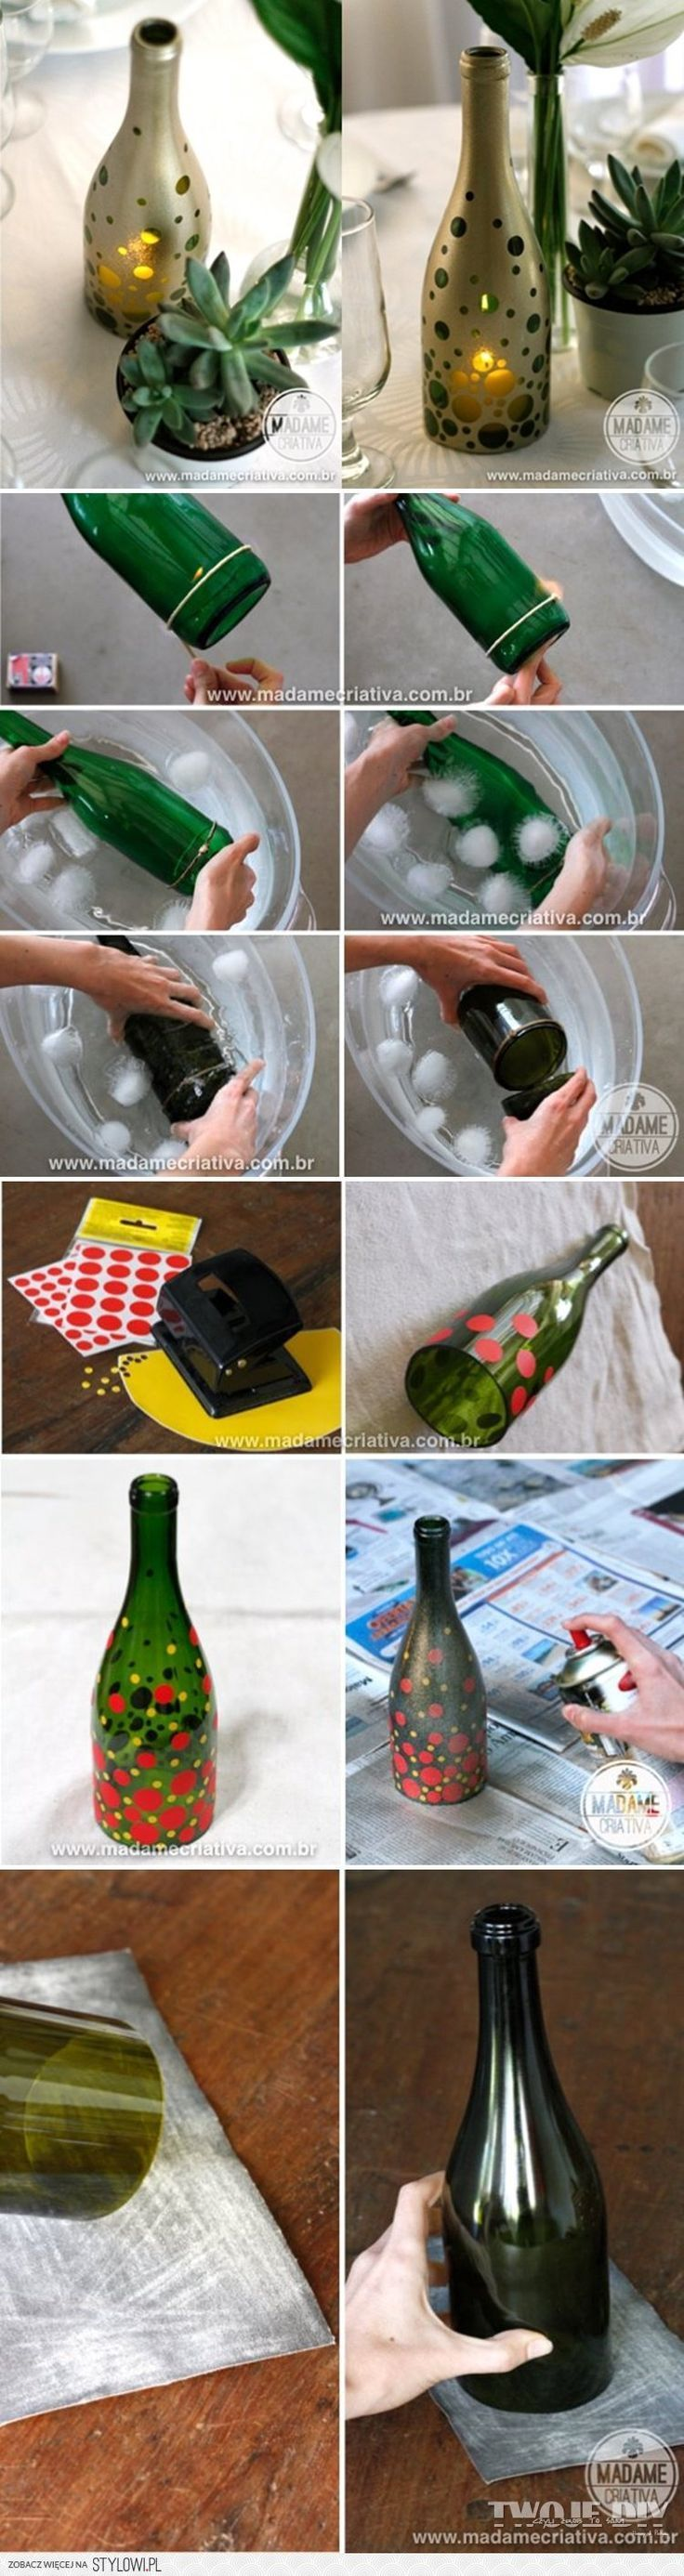 Do this but flip the bottle upside down as a weird vase shape for flowers! Cover the bottom with the cup of portion as an option